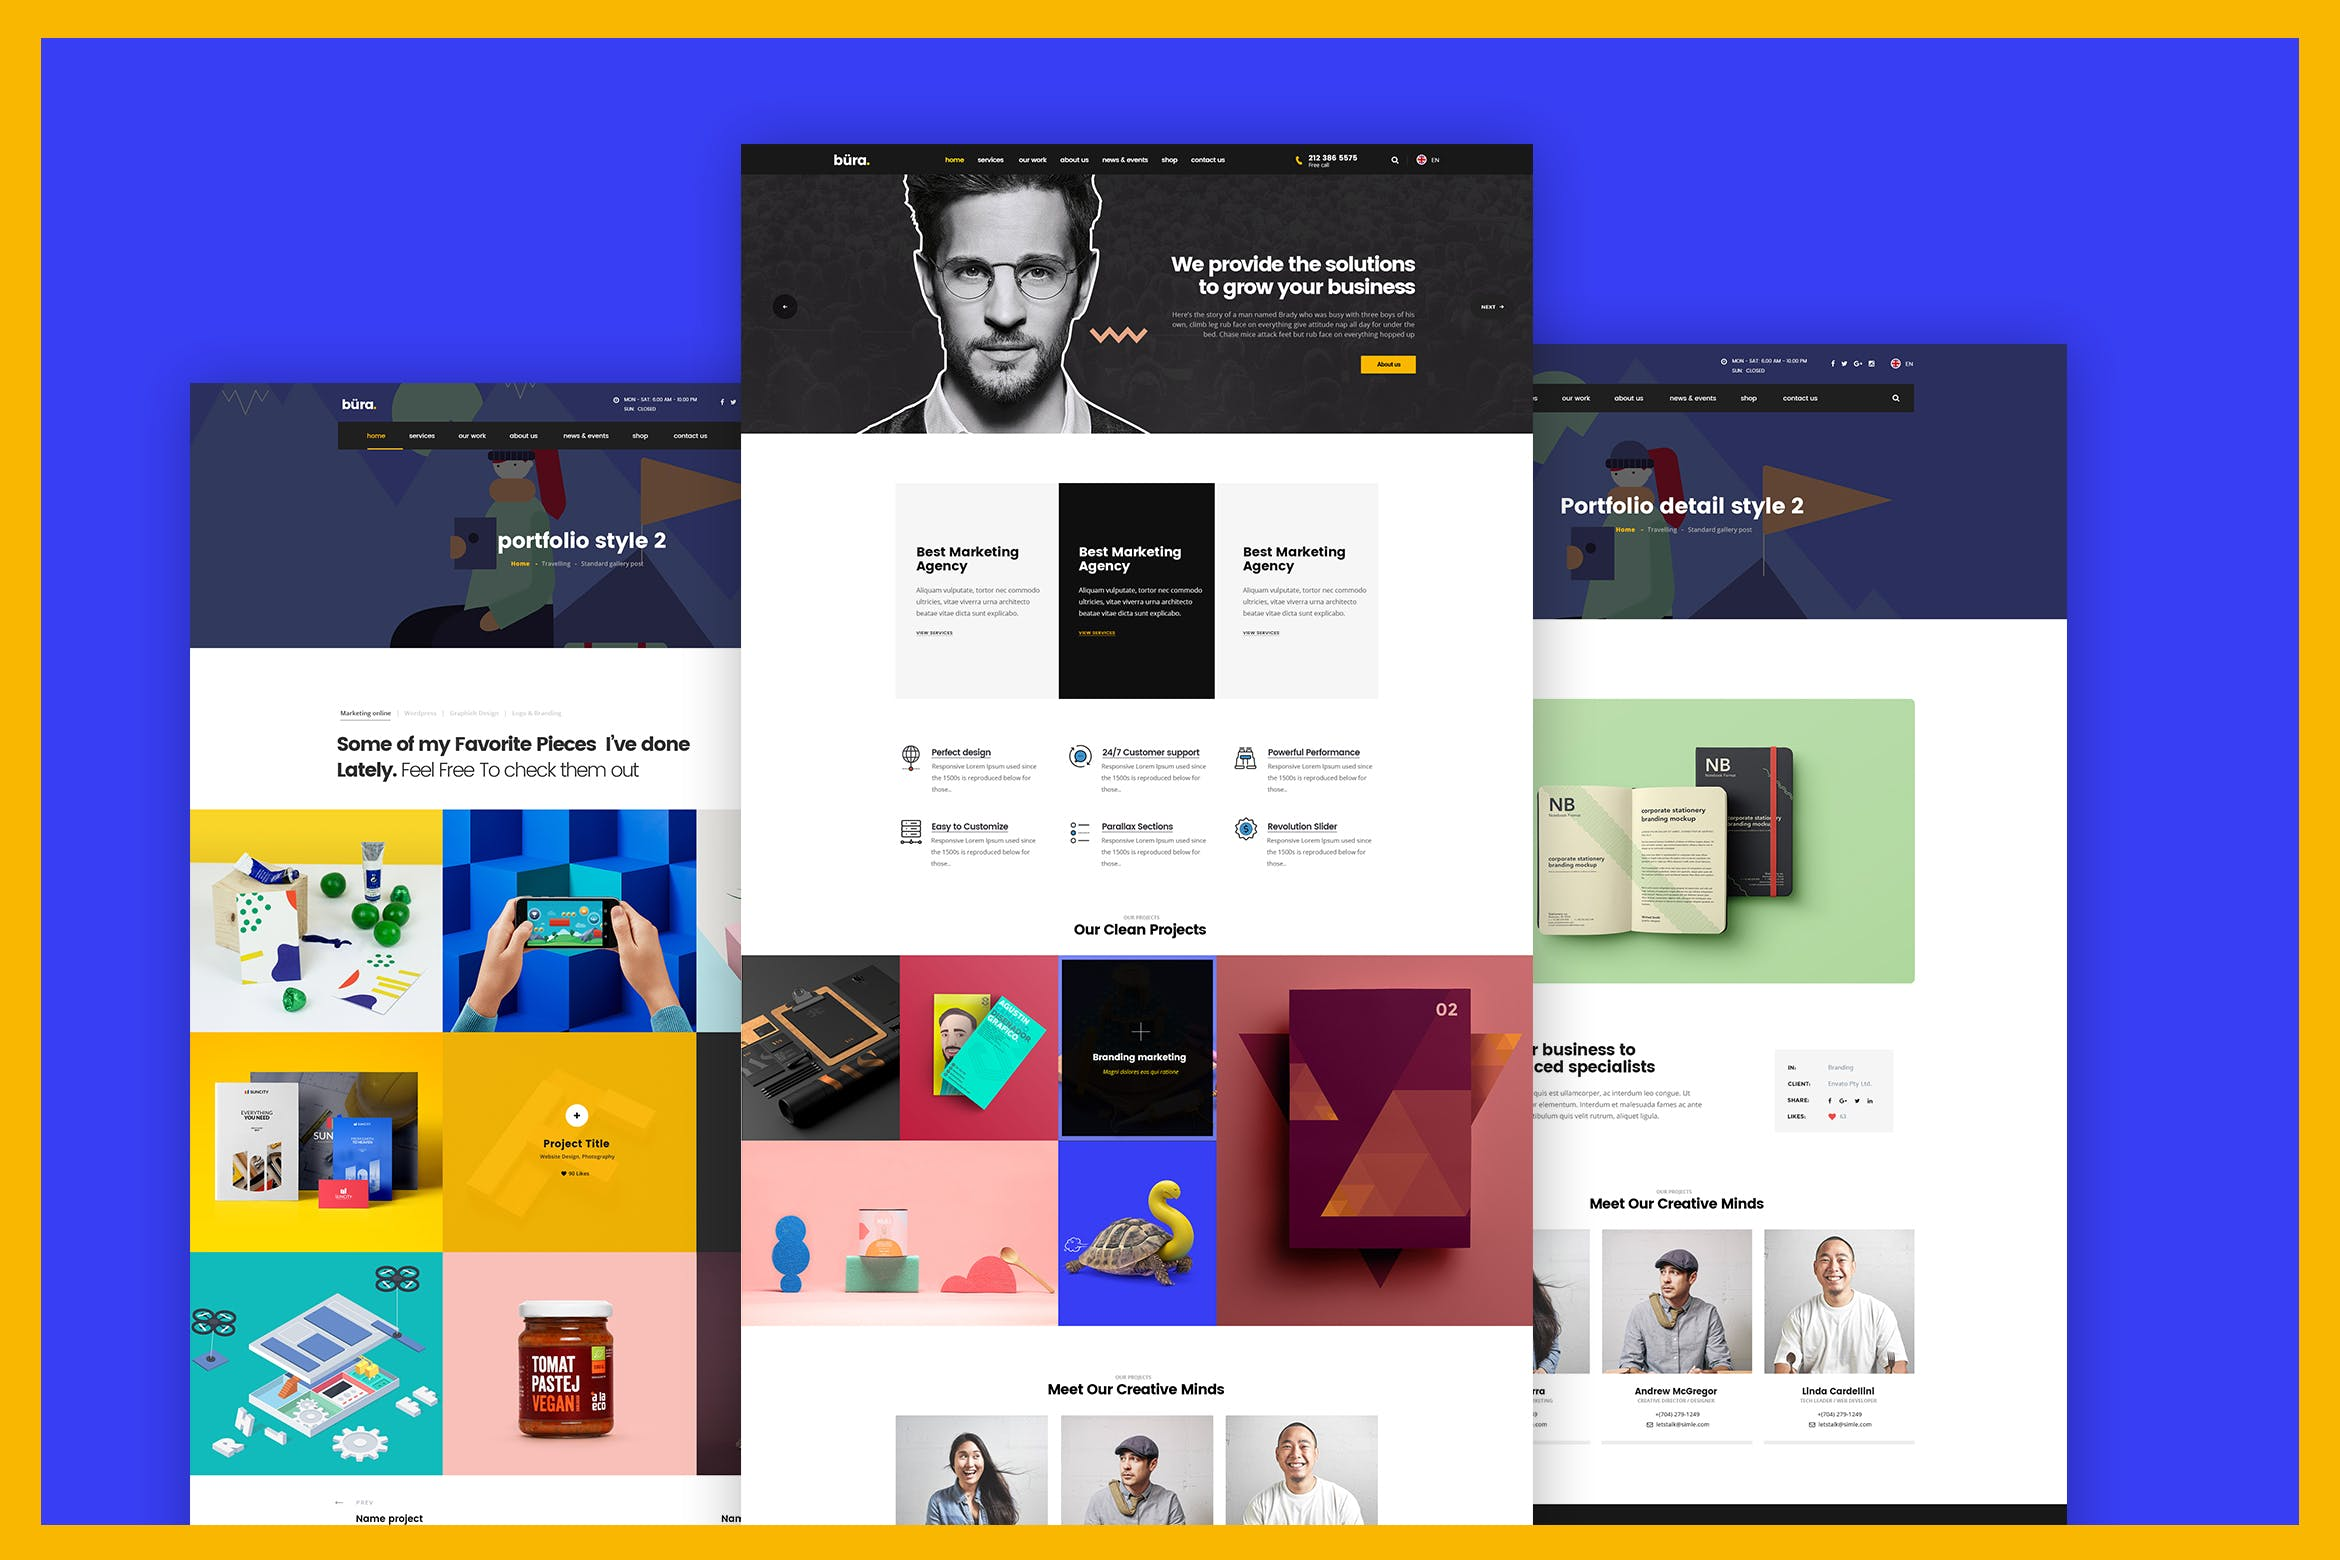 WEB端创意商业服务网站 Build Your Own Business Website Design Template